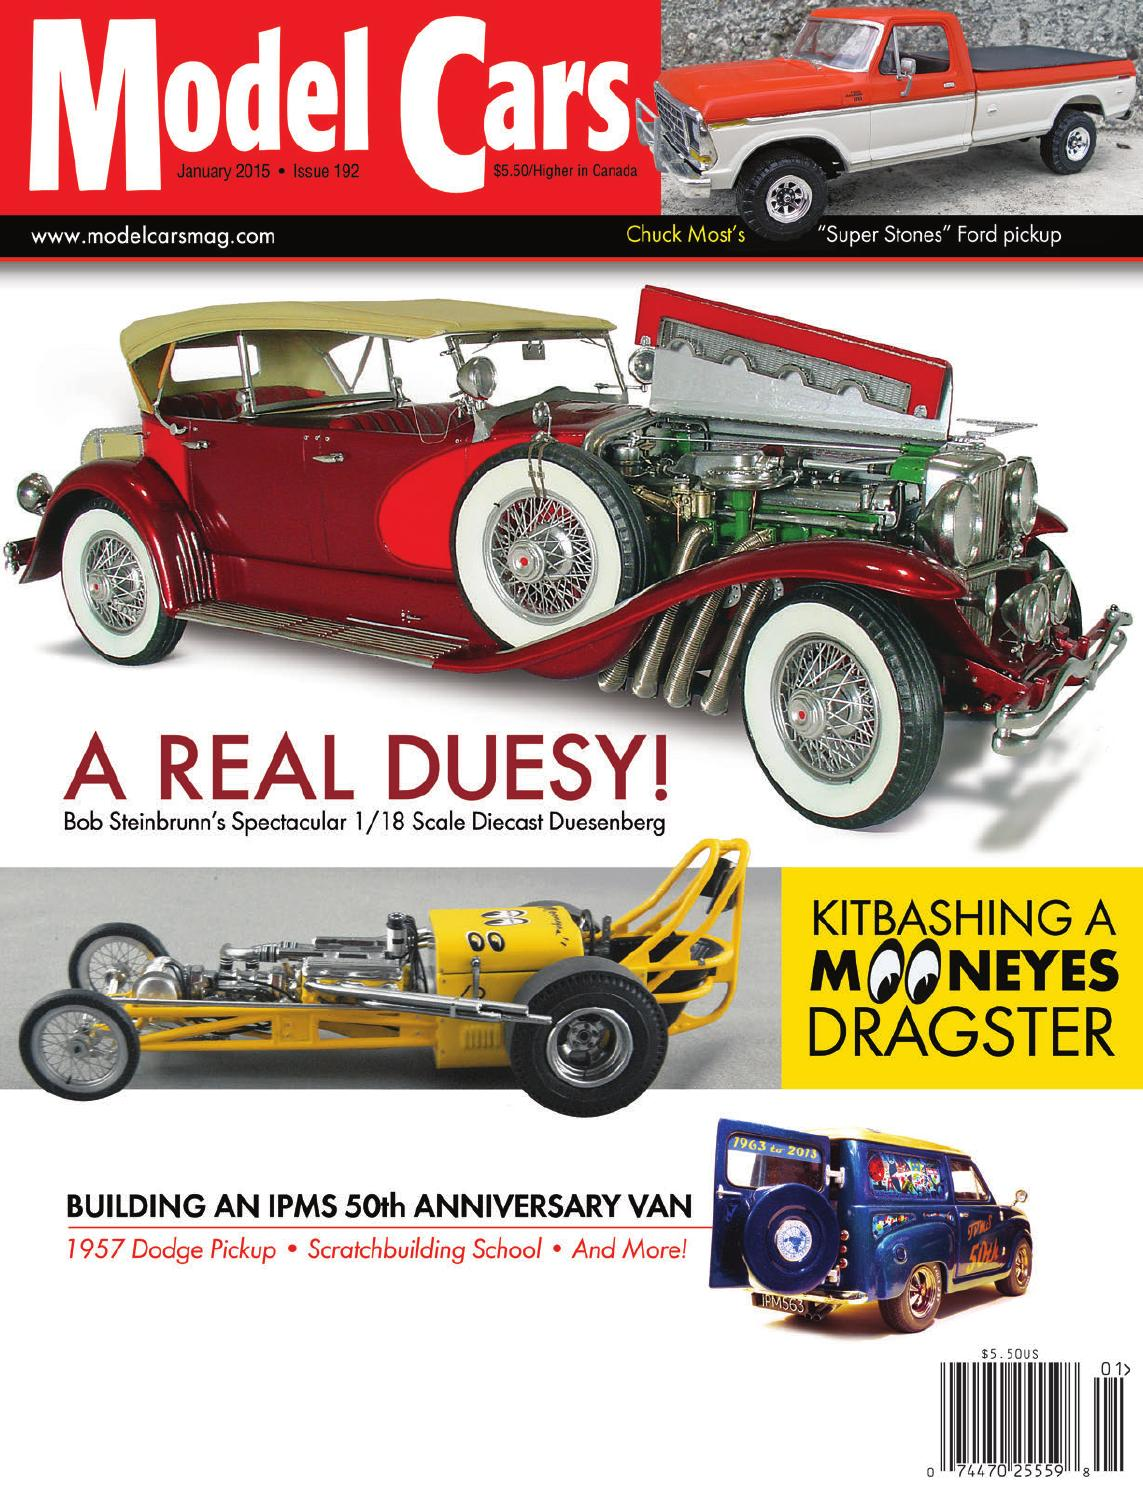 January 2015 #192 Issue of Model Cars Magazine by Model Cars ...